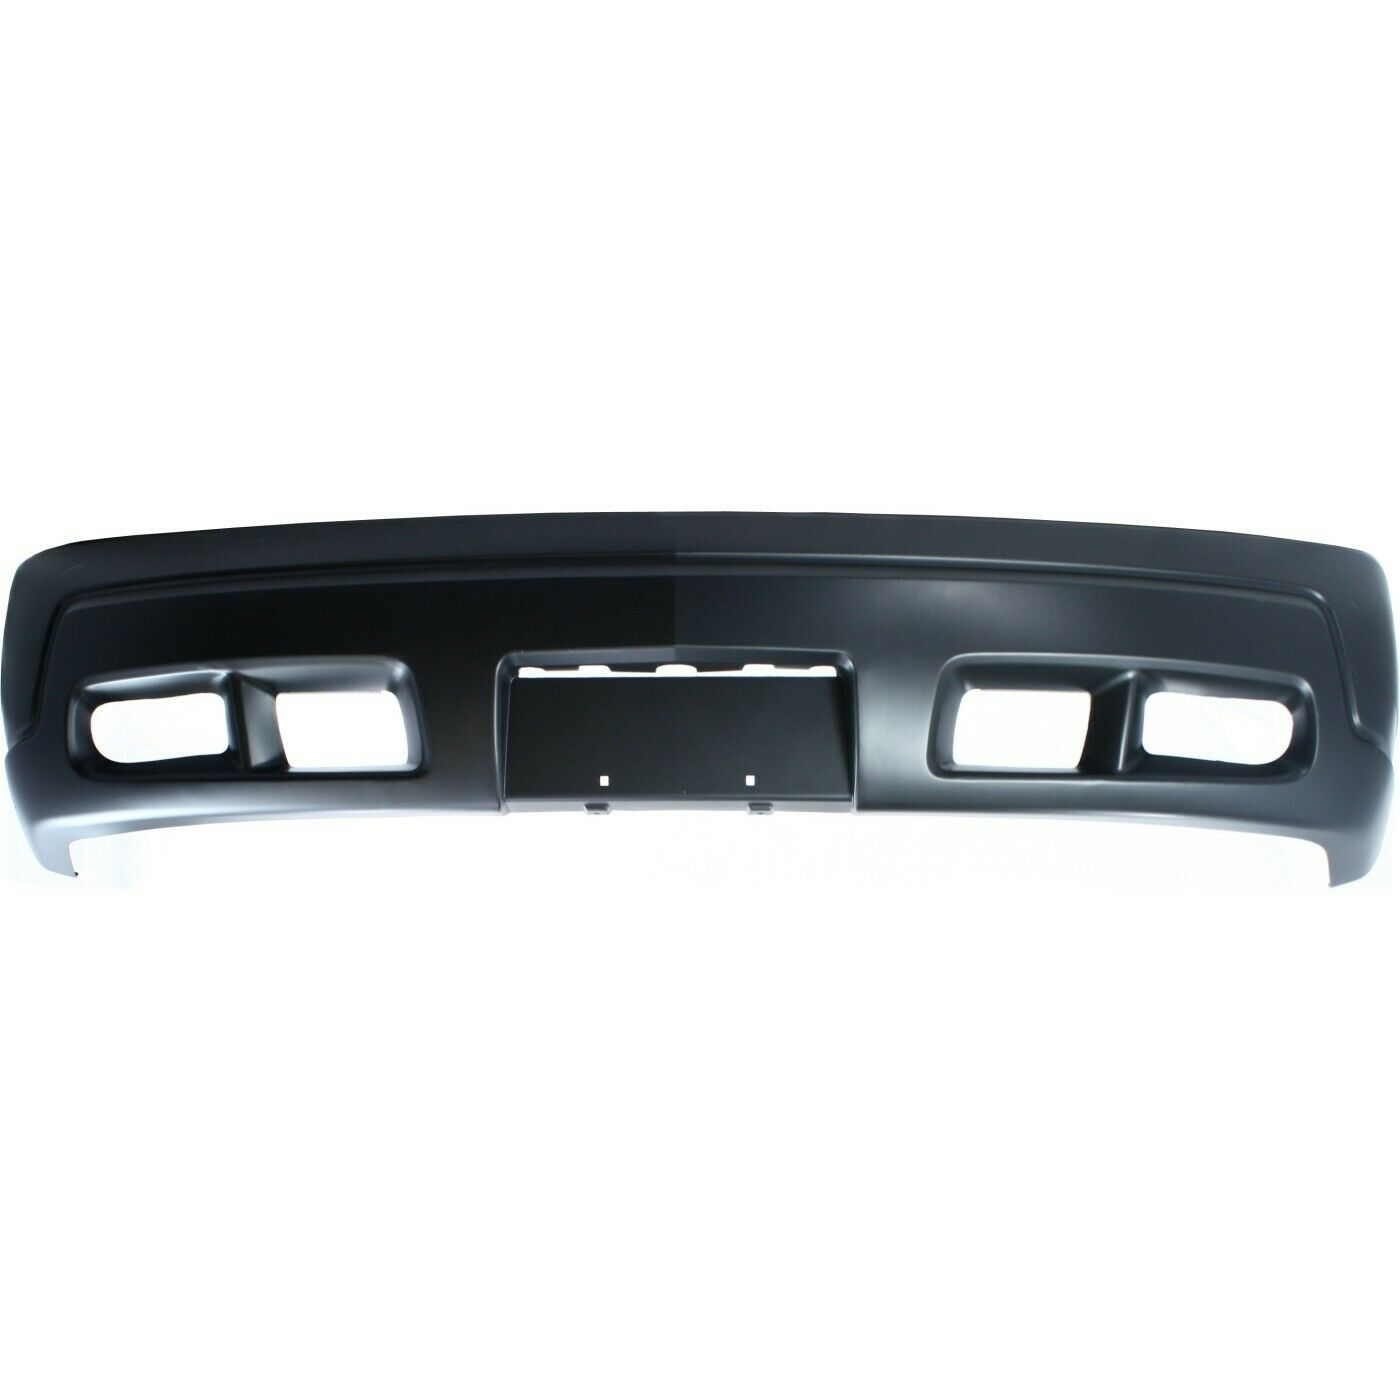 2002-2006 Cadillac Escalade Front Bumper Painted